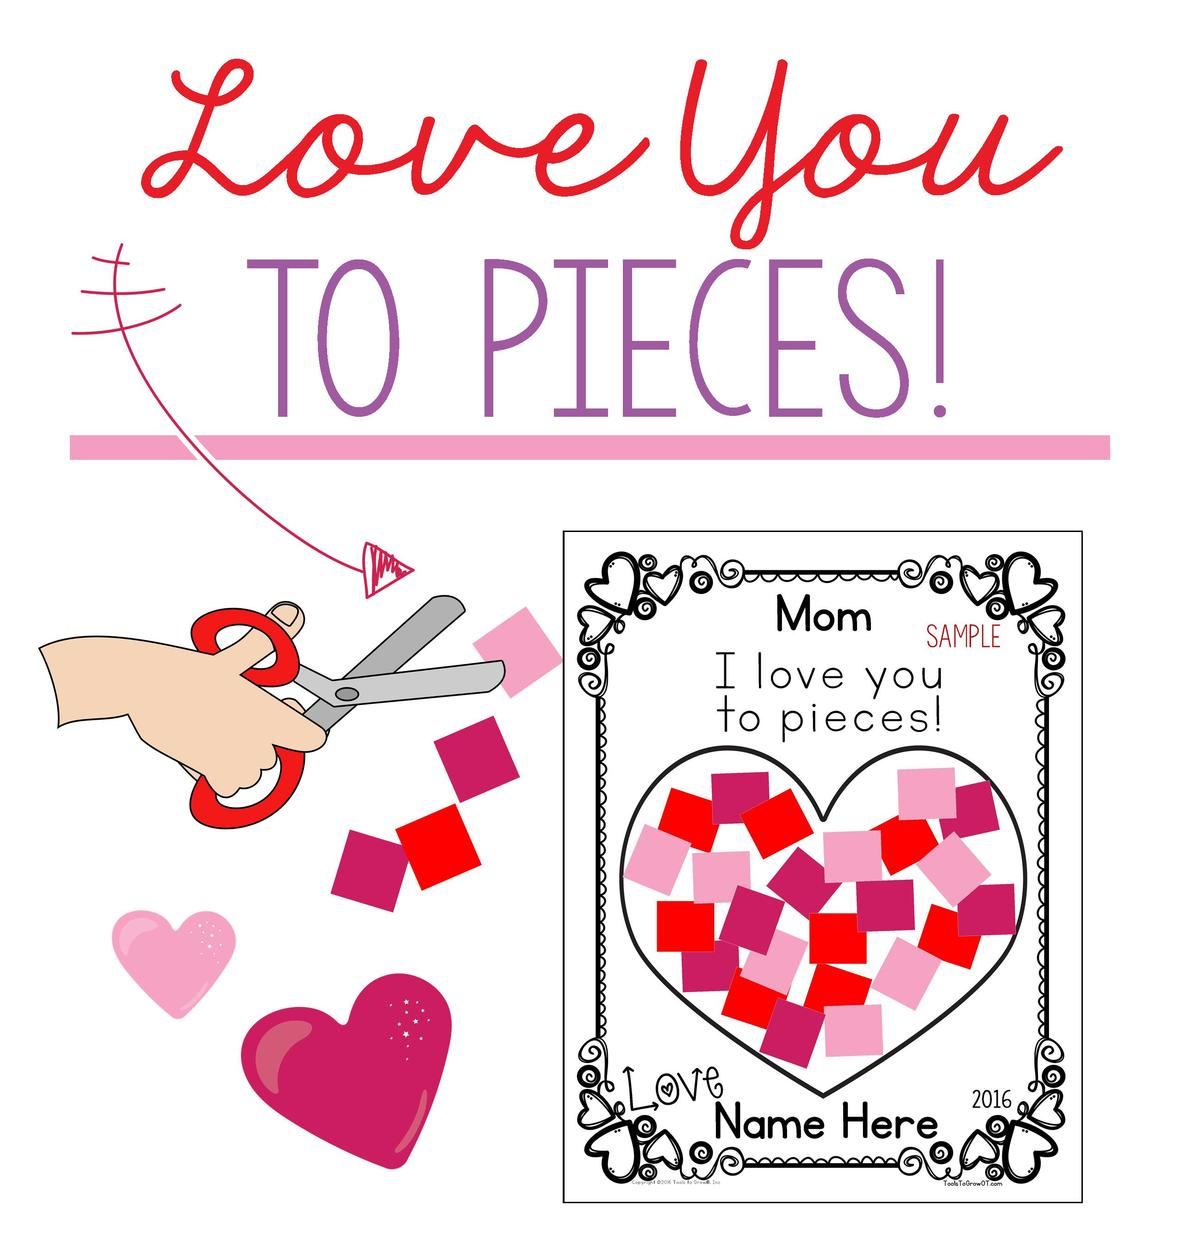 photo regarding I Love You to Pieces Printable referred to as Valentines Working day Entertaining!!